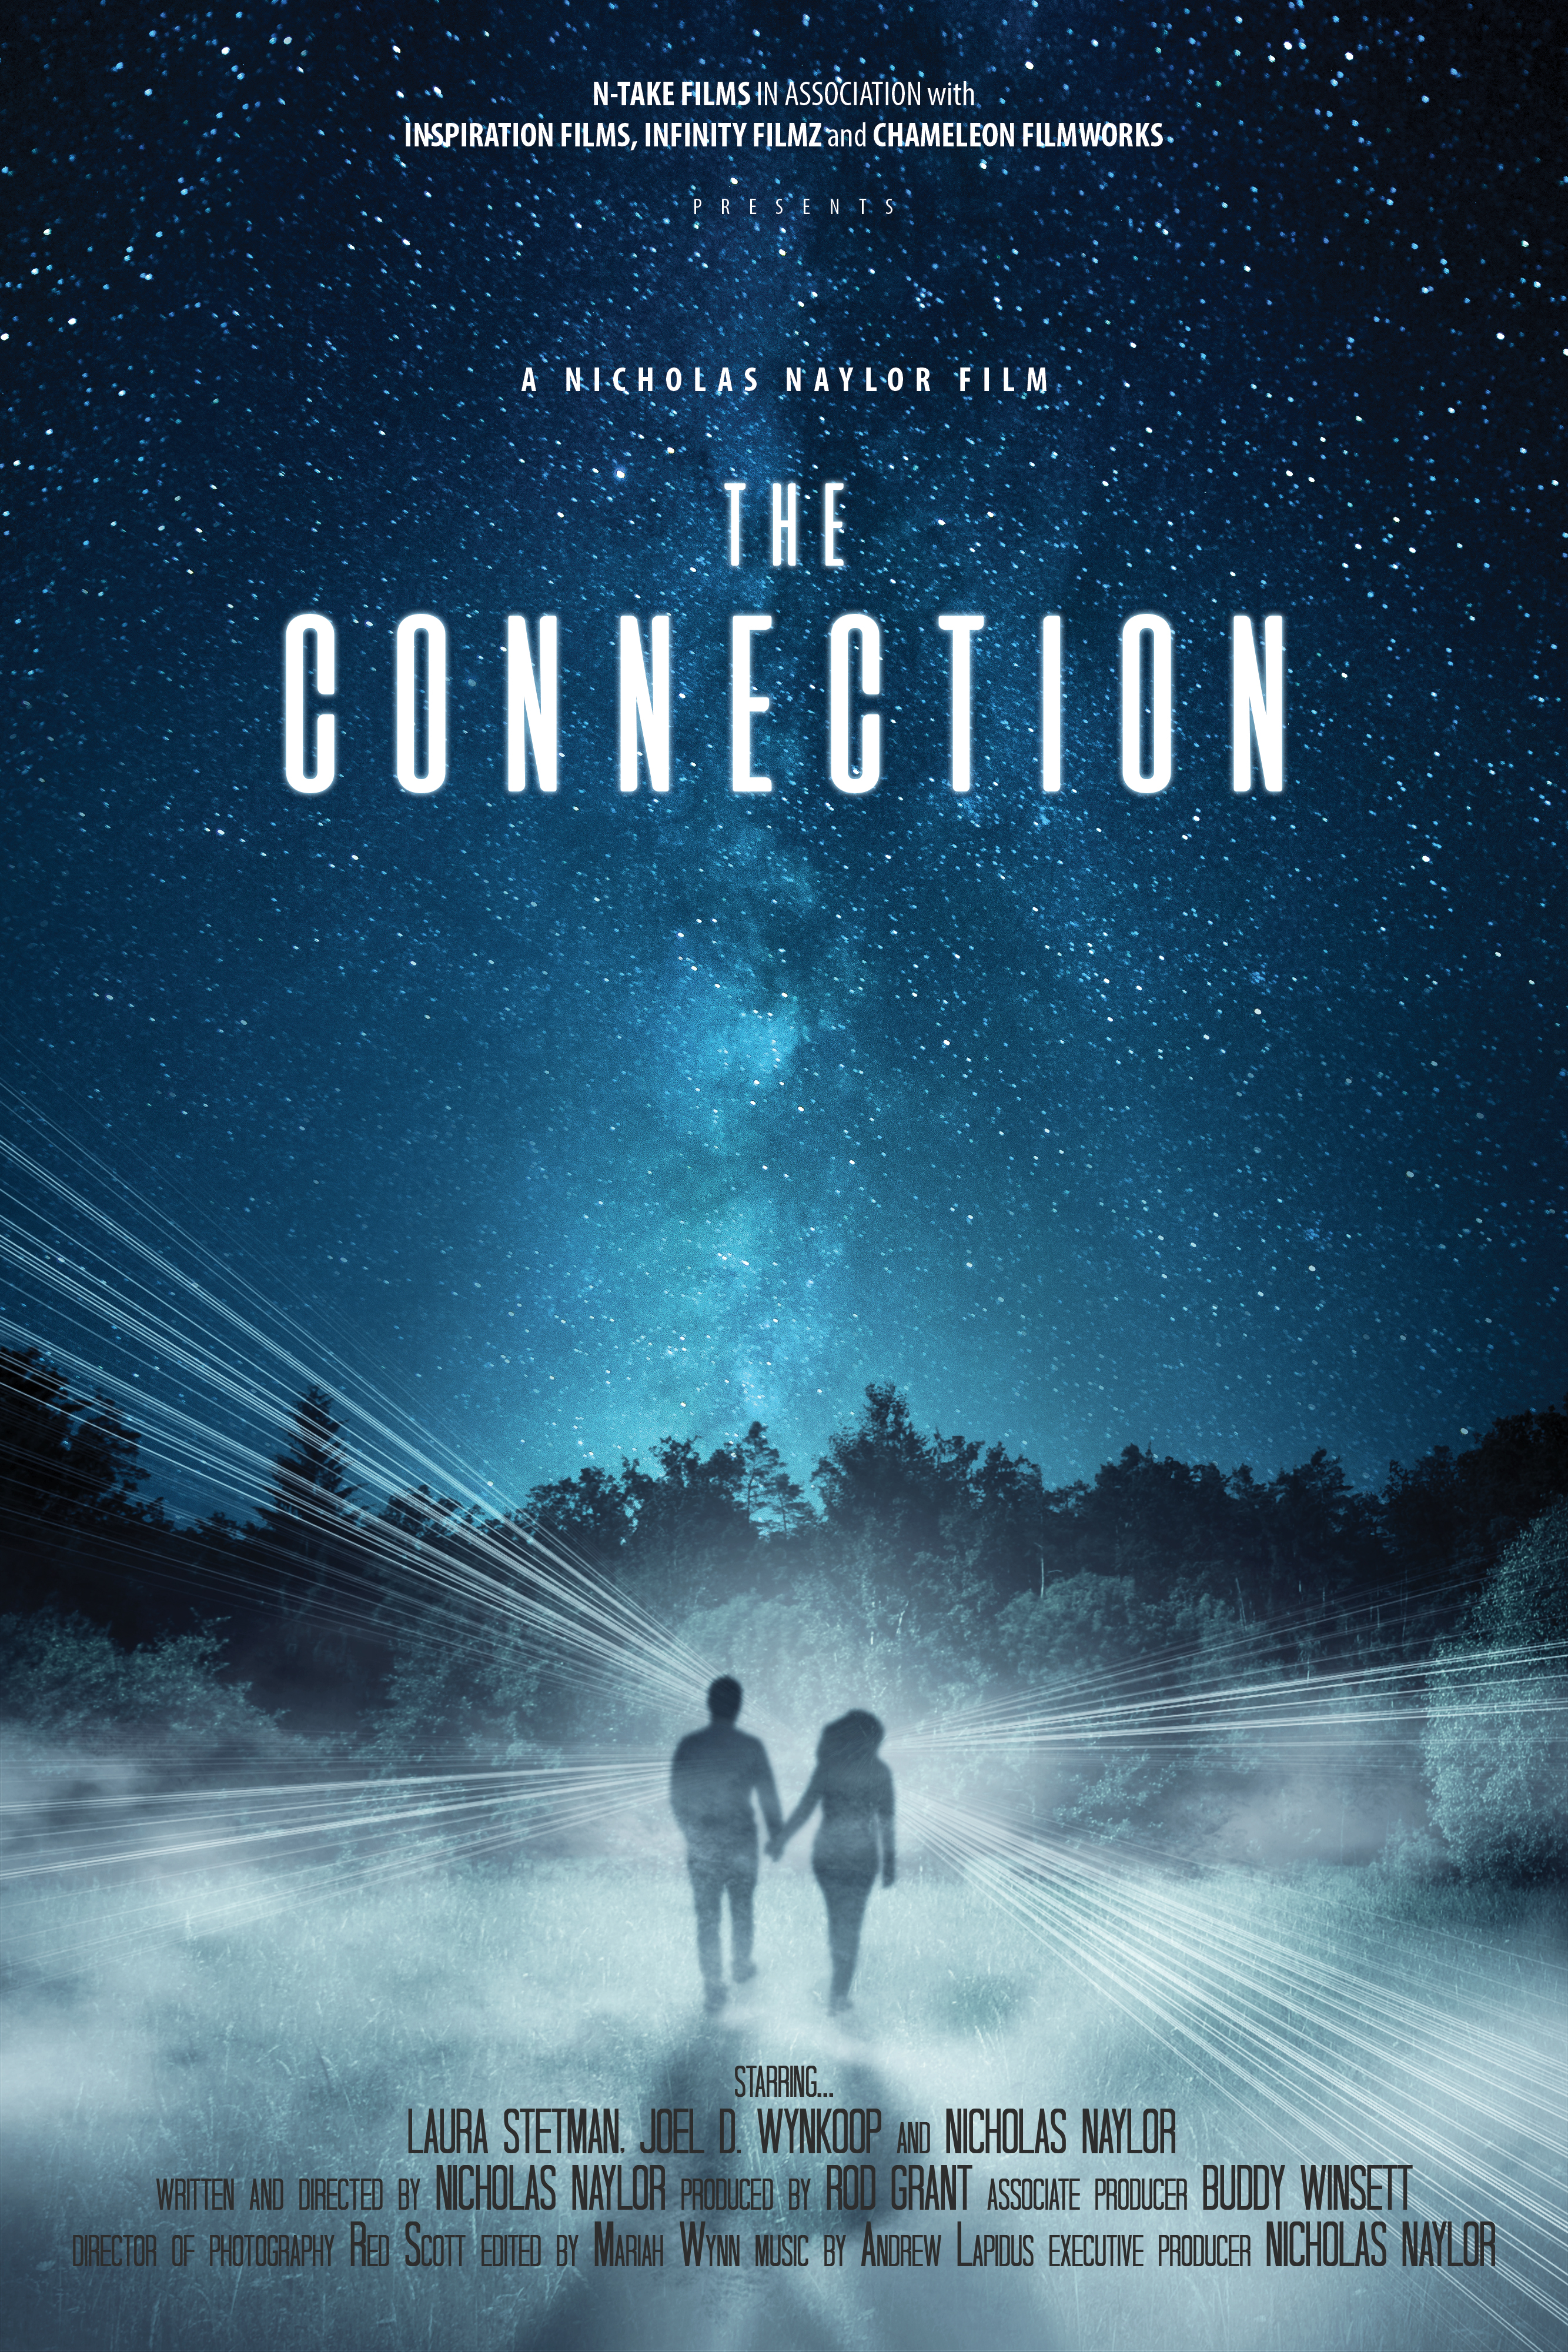 The Connection poster image